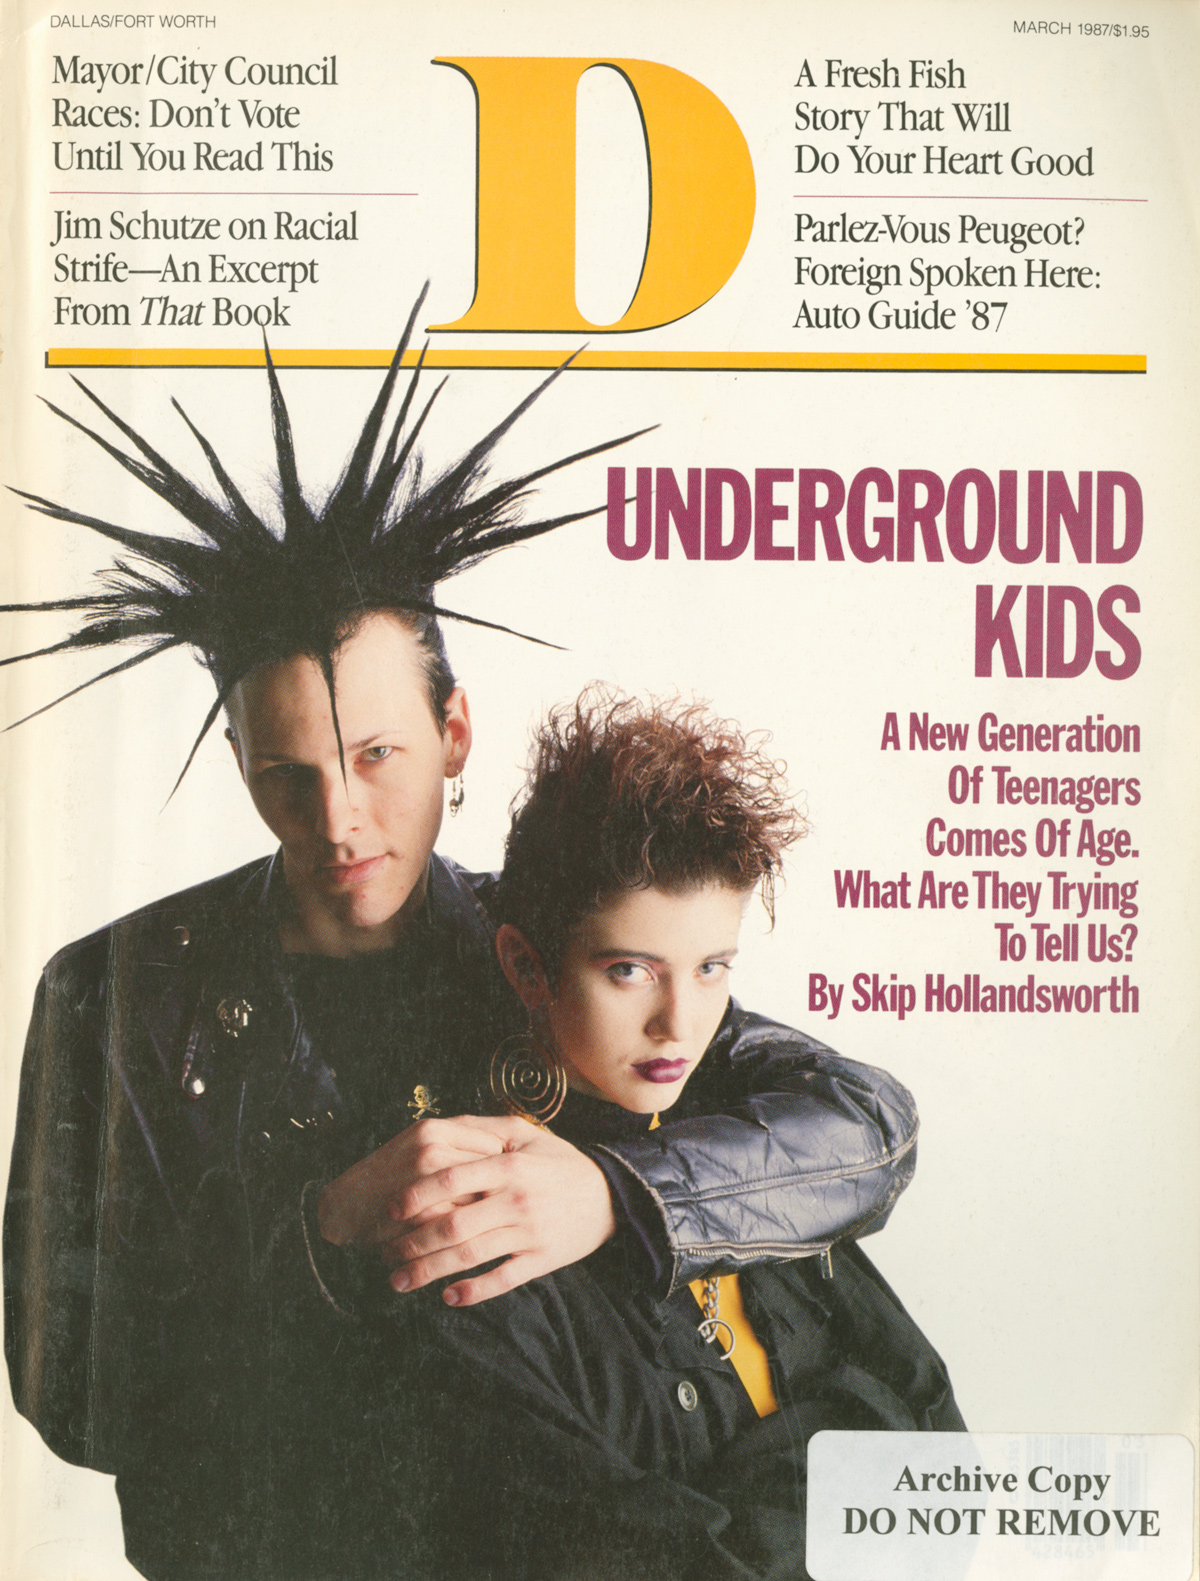 March 1987 cover